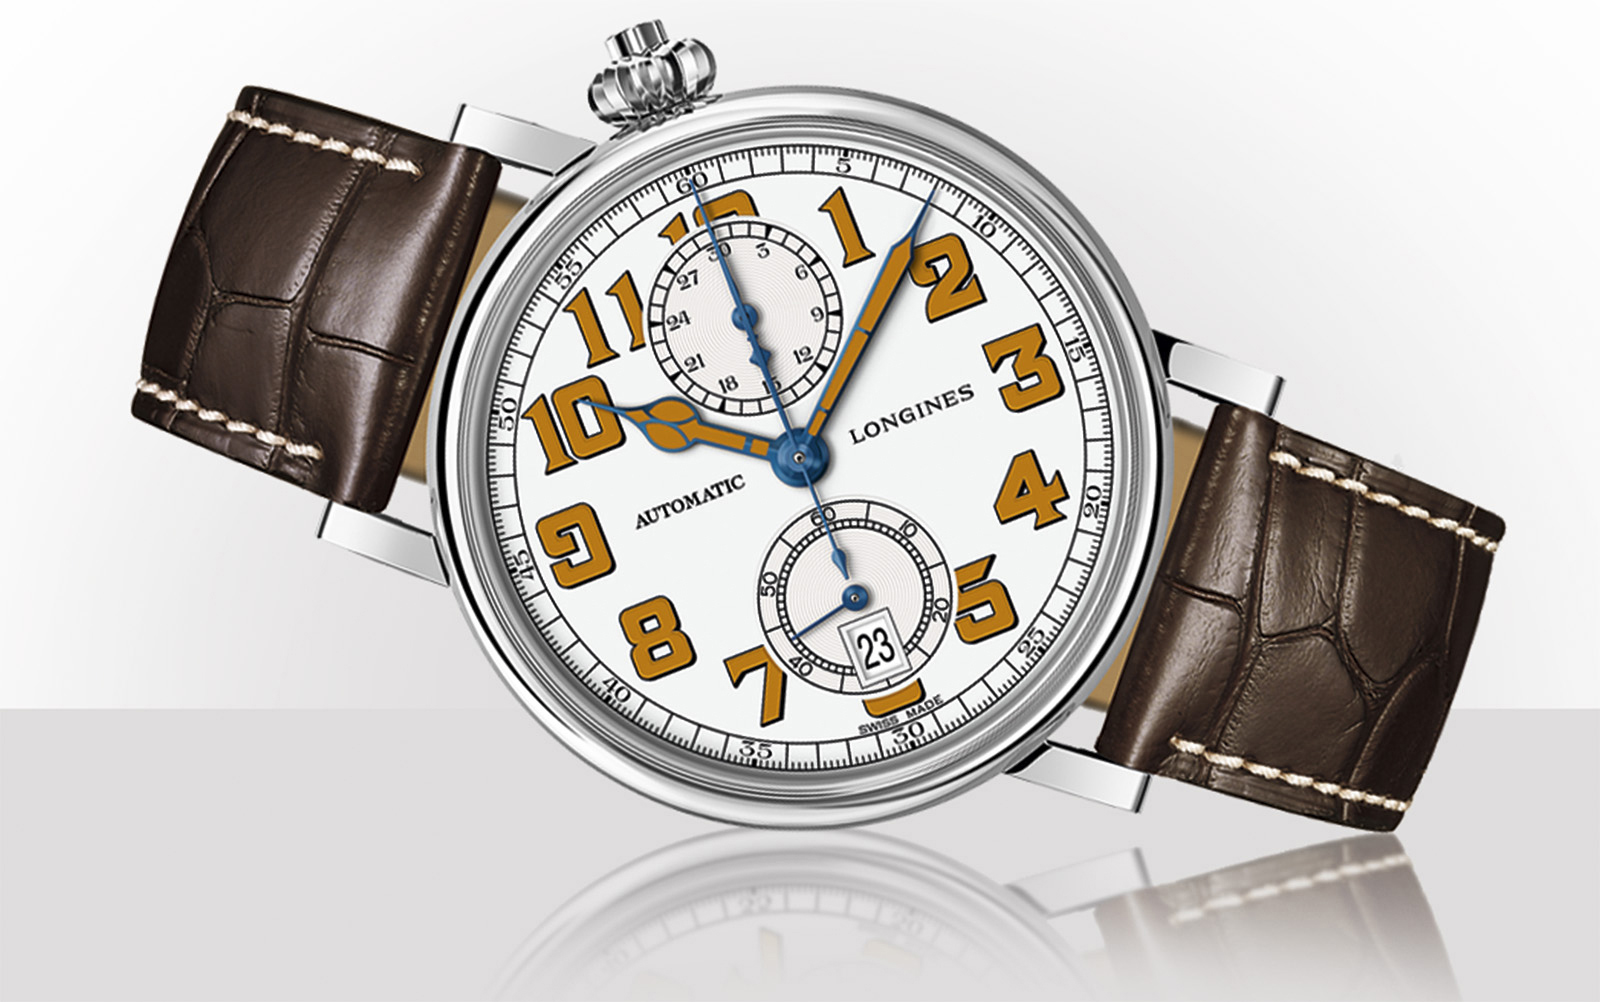 Longines Avigation Watch Type A-7 1935 (2016)